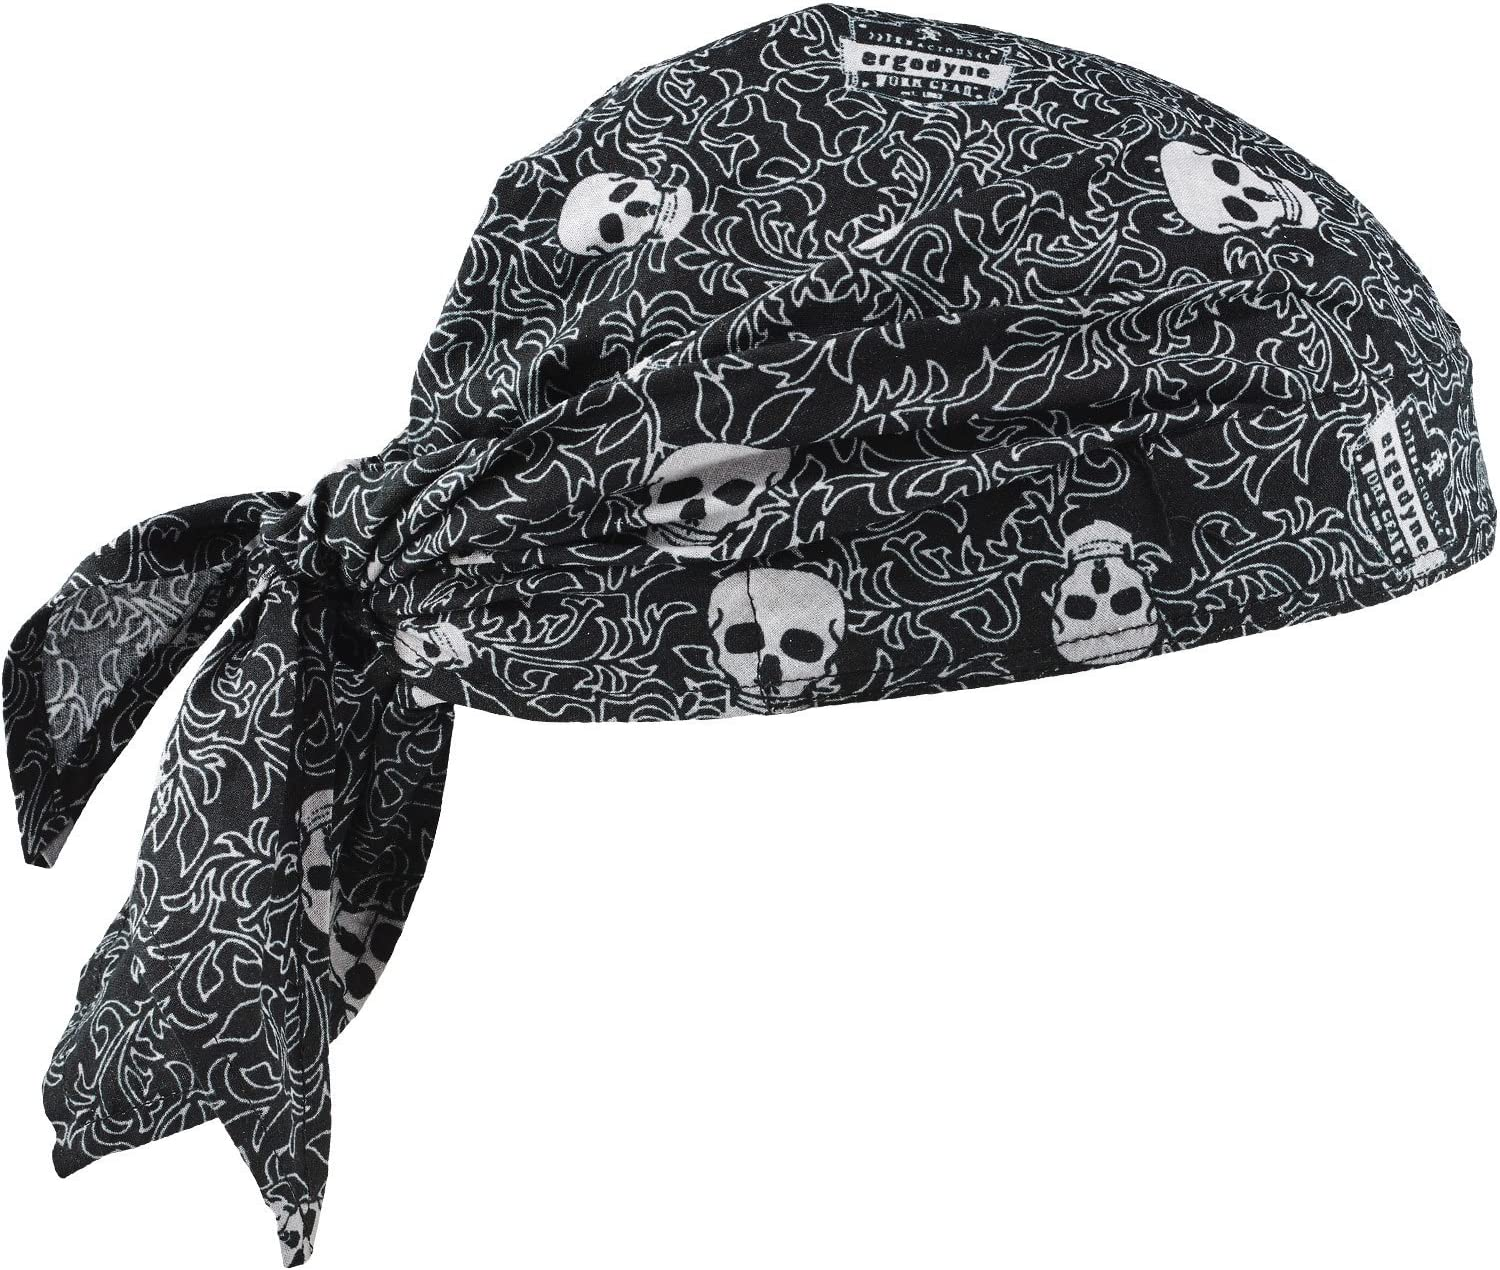 Ergodyne Chill-Its 6710 Evaporative Polymer Cooling Dew Rag, Skulls